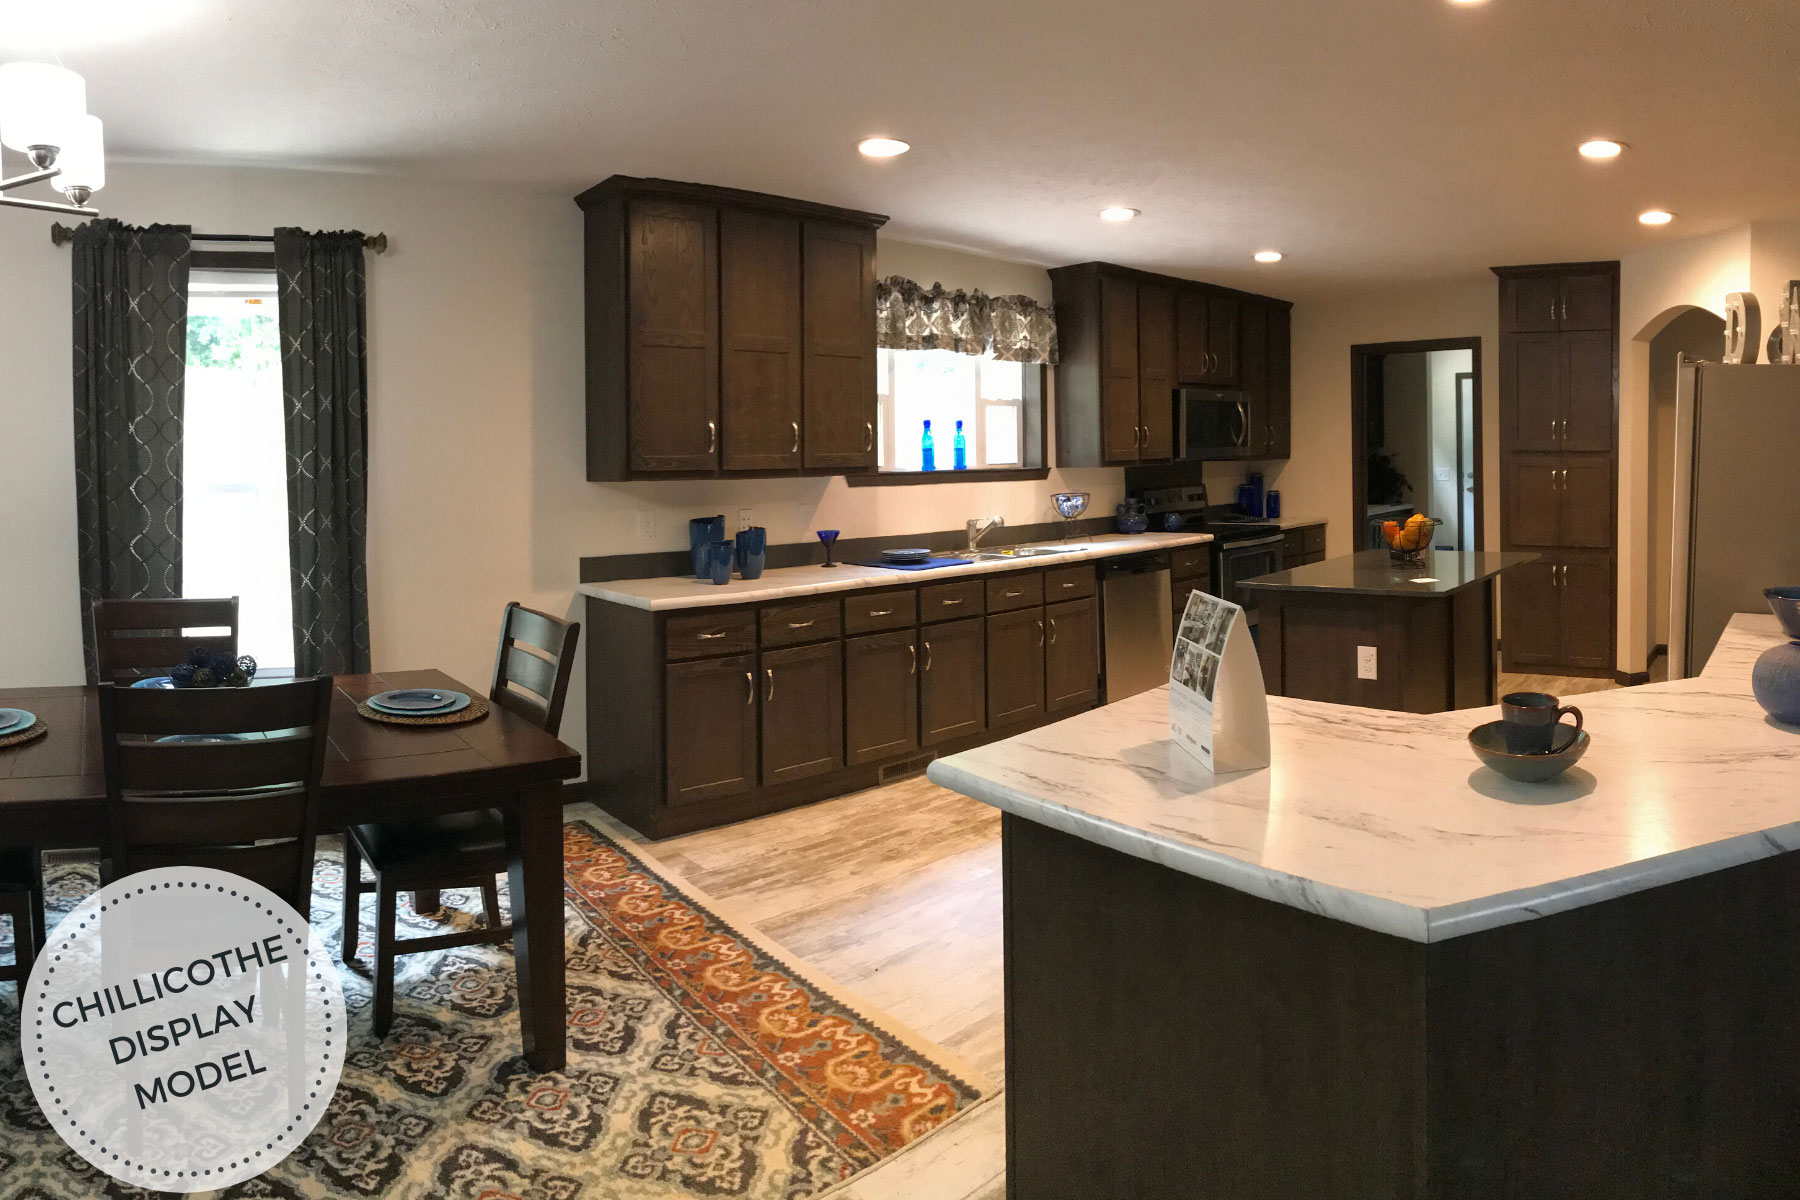 Champion-Barclay-6019-Chillicothe-Creston-Kitchen-2